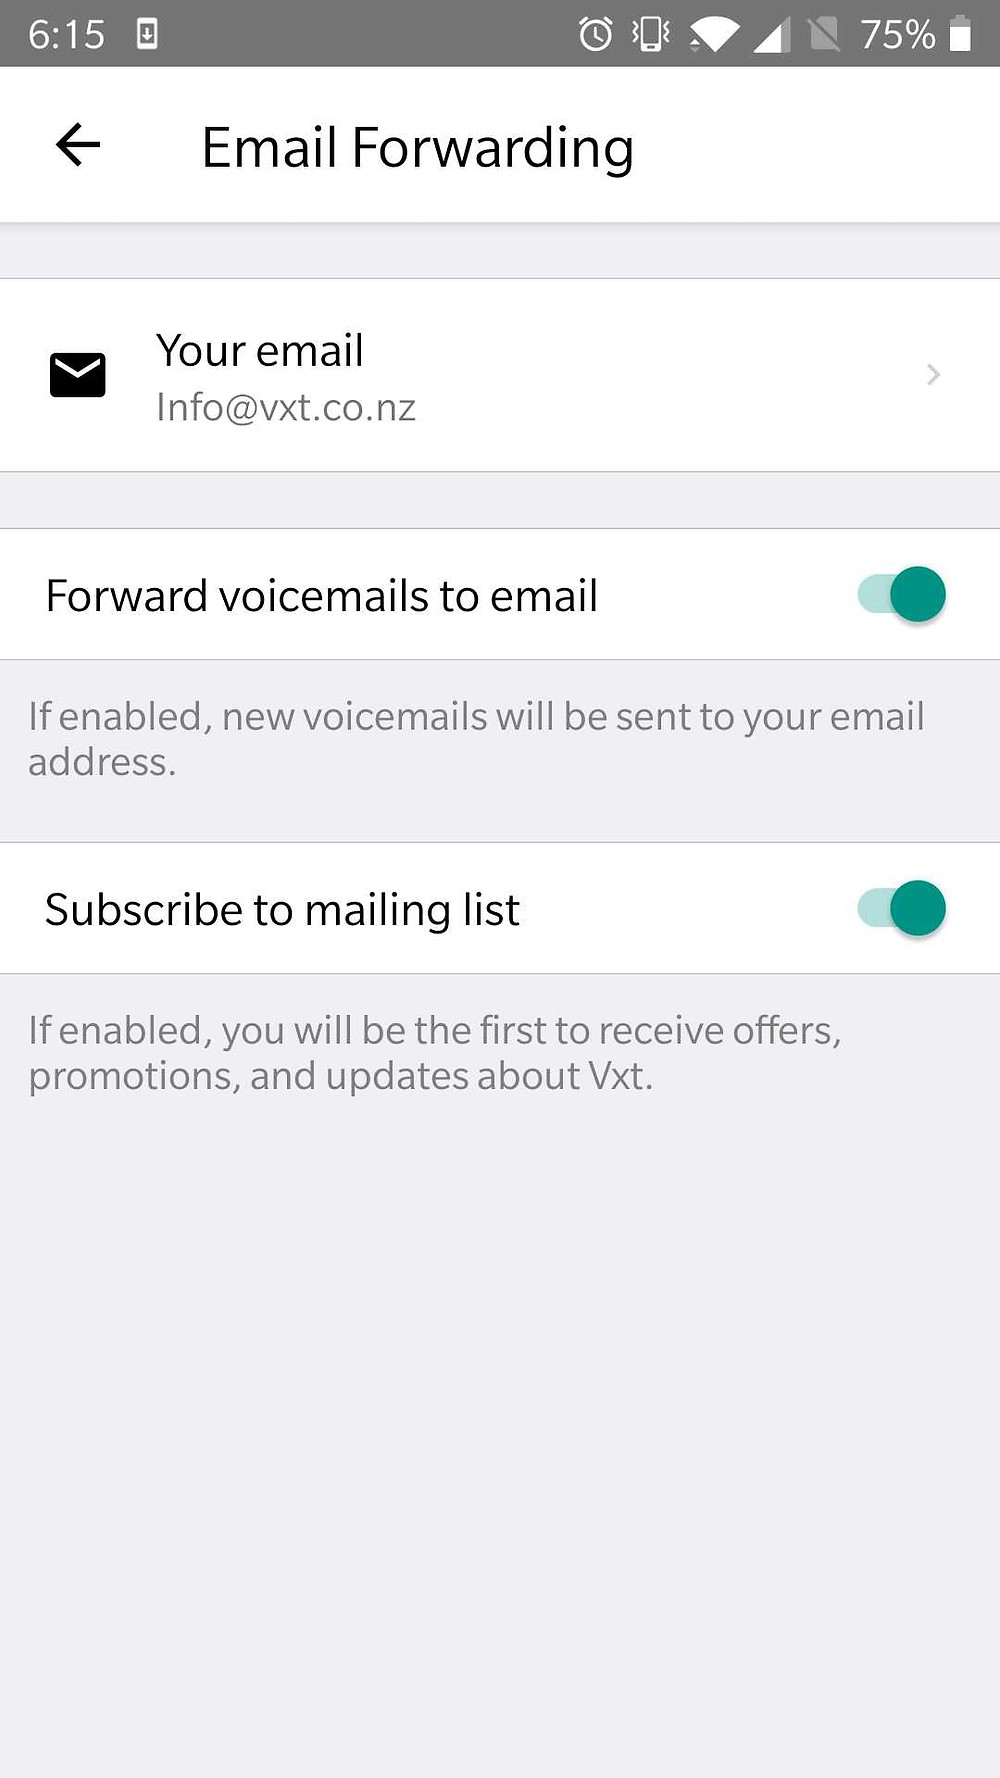 Email forwarding screen inside of the Vxt app